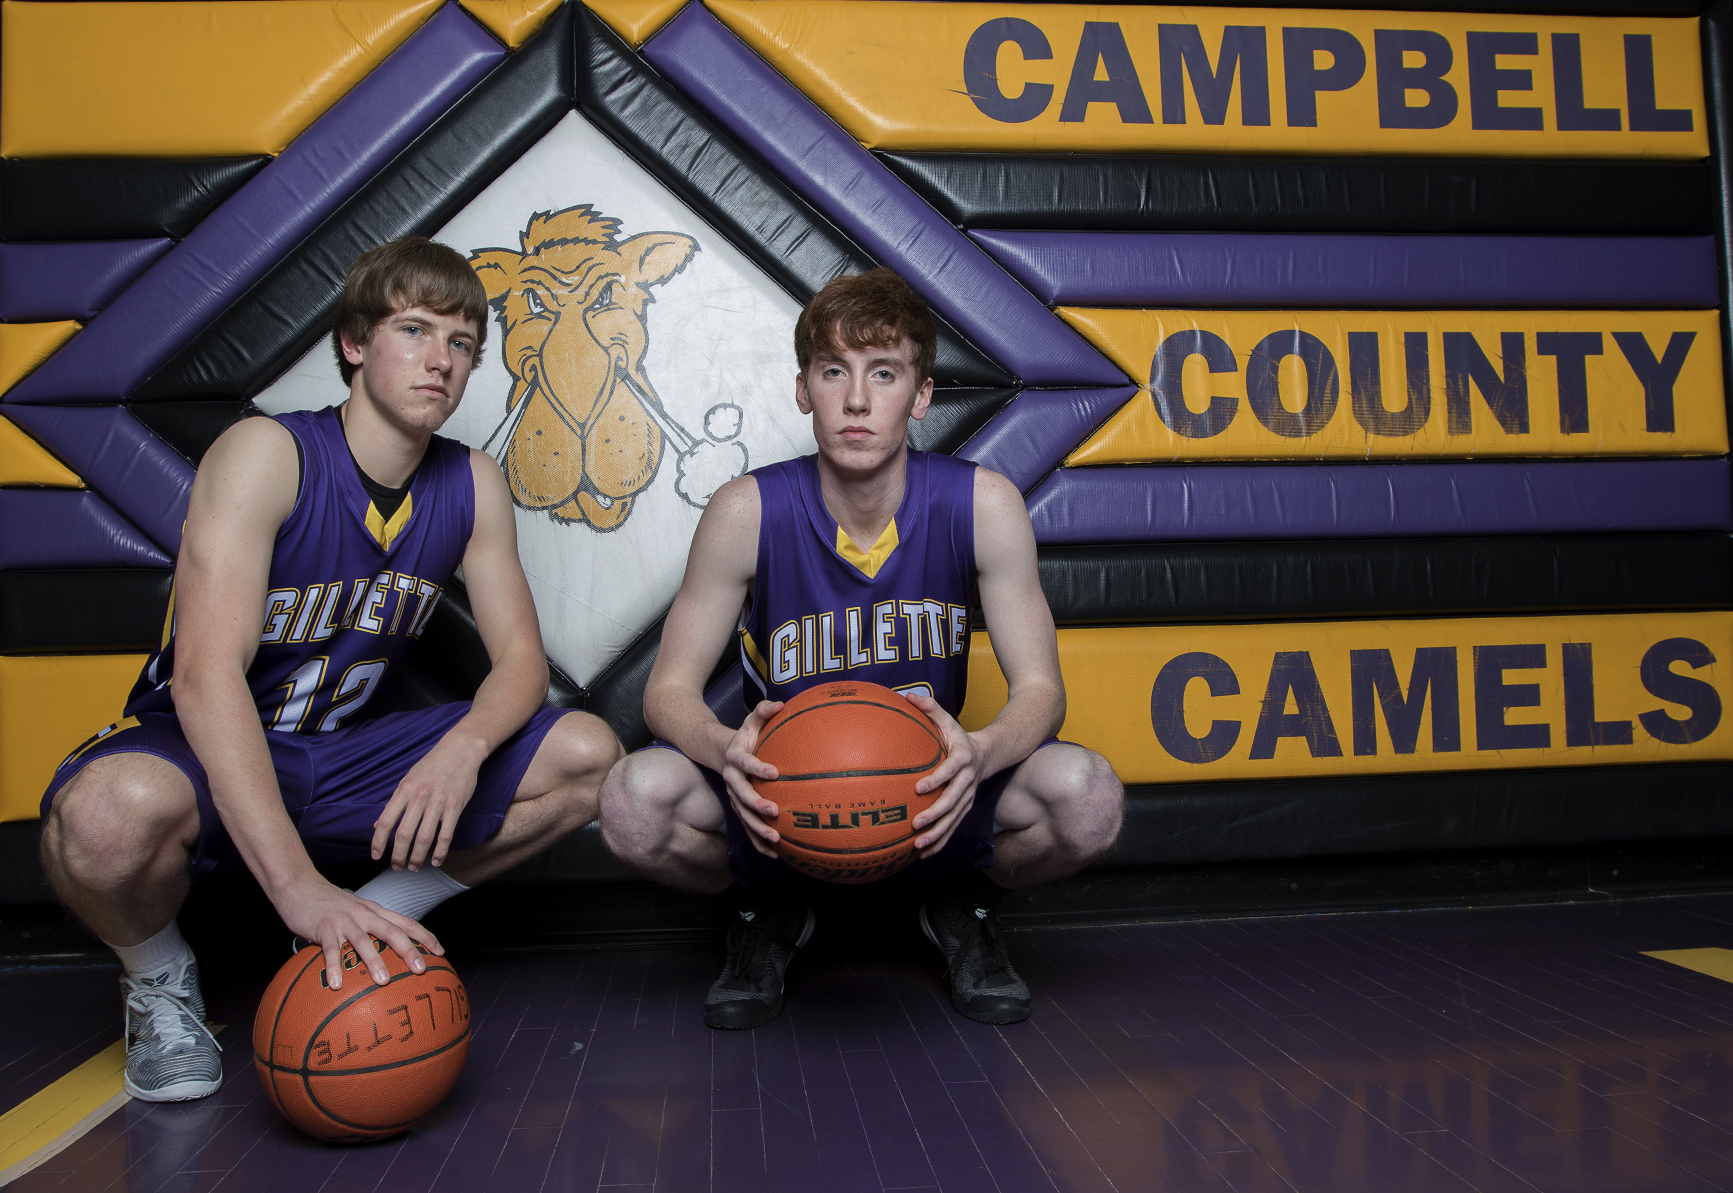 Hunter Sylte, left, and Joe Quinn are wrapping up their Camels careers this year, with their final home game this Friday night. The duo have been playing basketball together, along with fellow seniors Kain Morehead and Dalton Holst, since their traveling team the Outlaws in fourth grade.